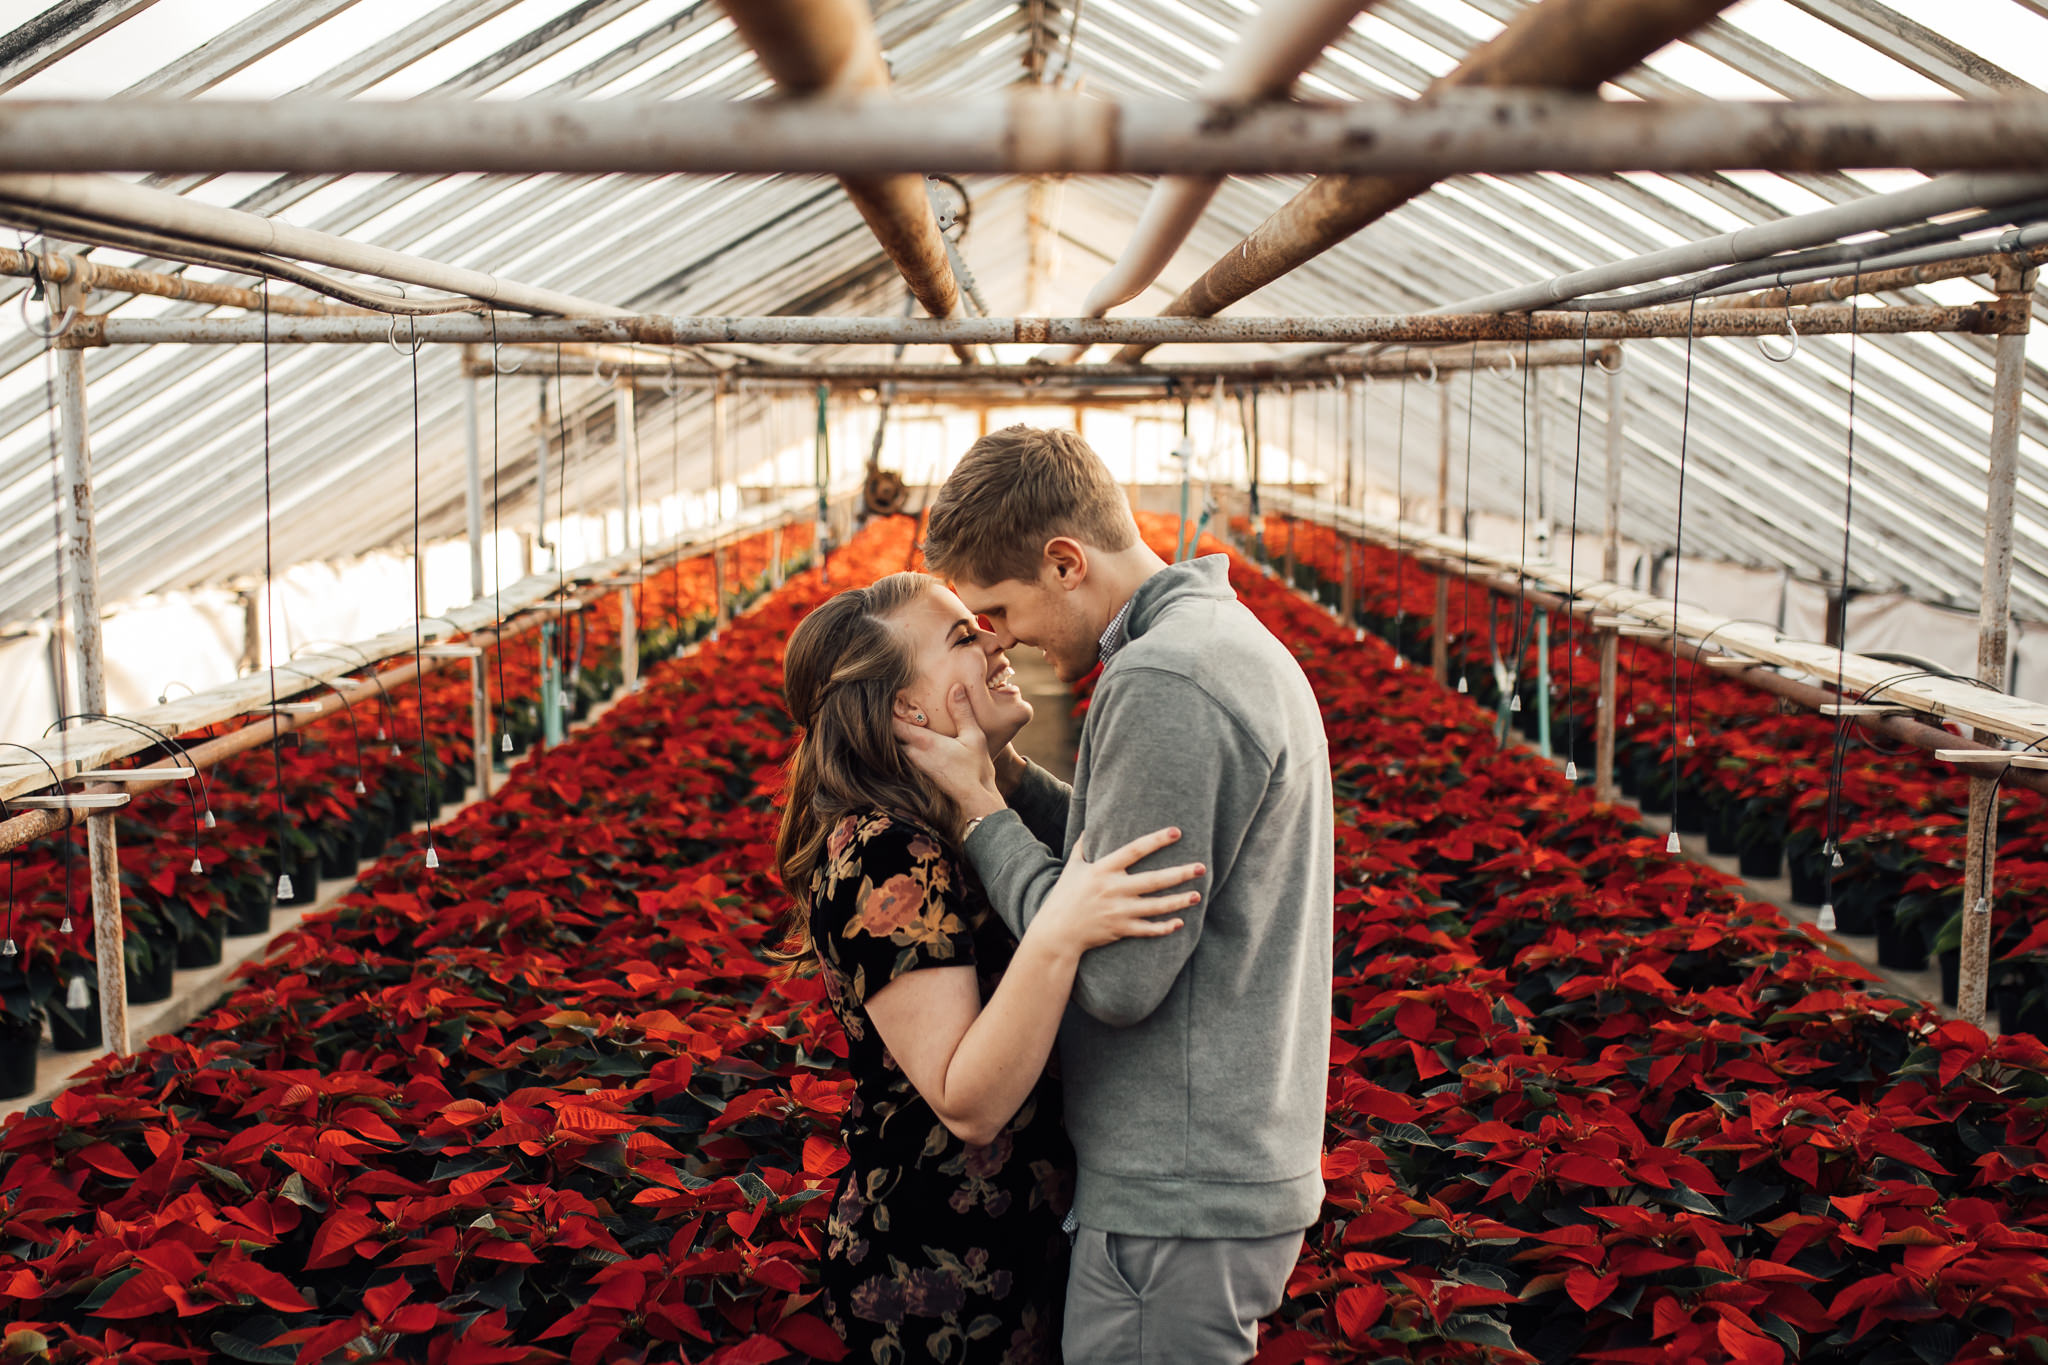 memphis-wedding-photographer-greenhouse-engagement-pictures-cassie-cook-photography-24.jpg